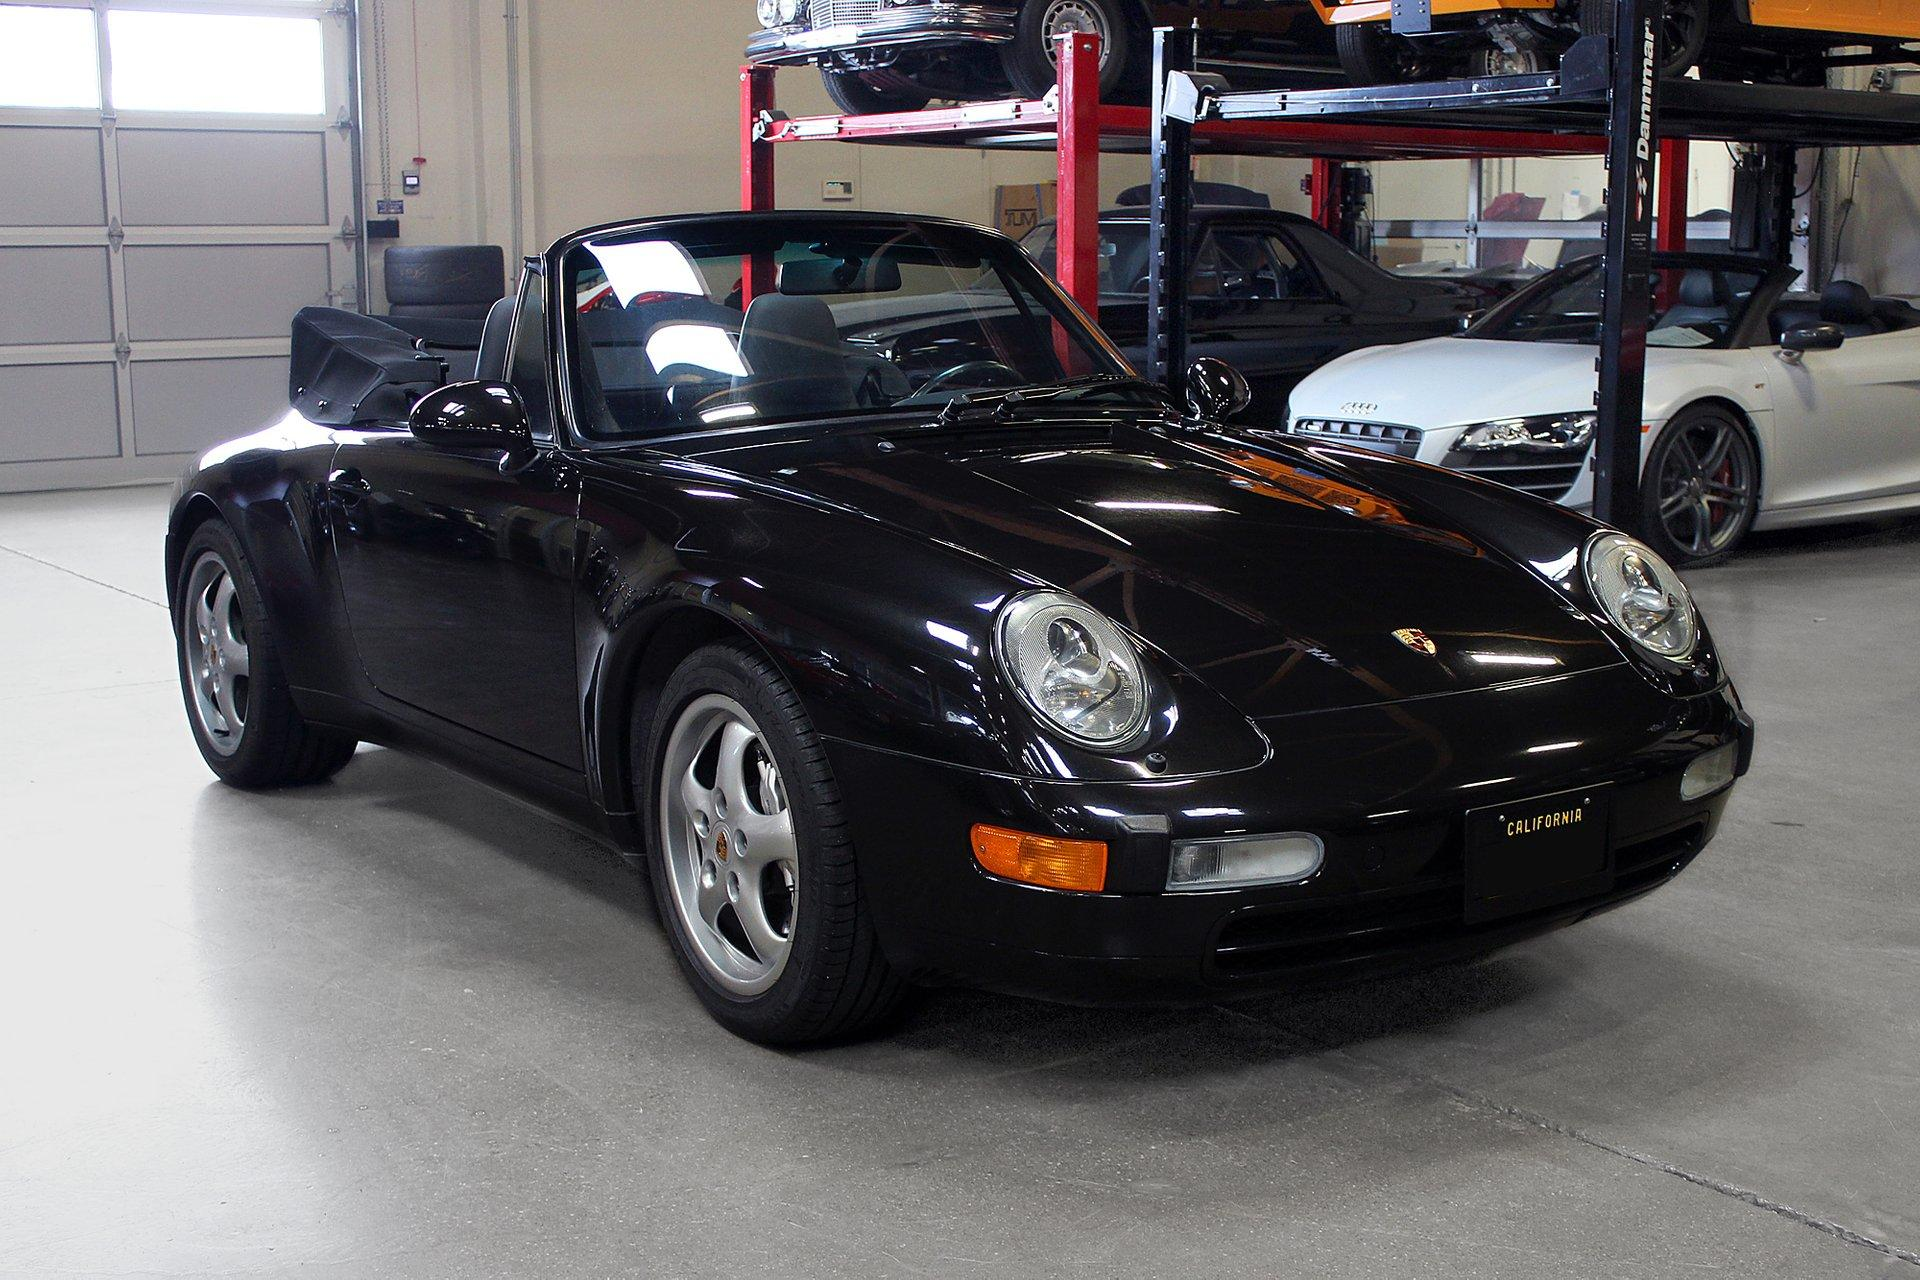 Used 1997 Porsche 911 Carrera 4 Cabriolet for sale Sold at San Francisco Sports Cars in San Carlos CA 94070 1